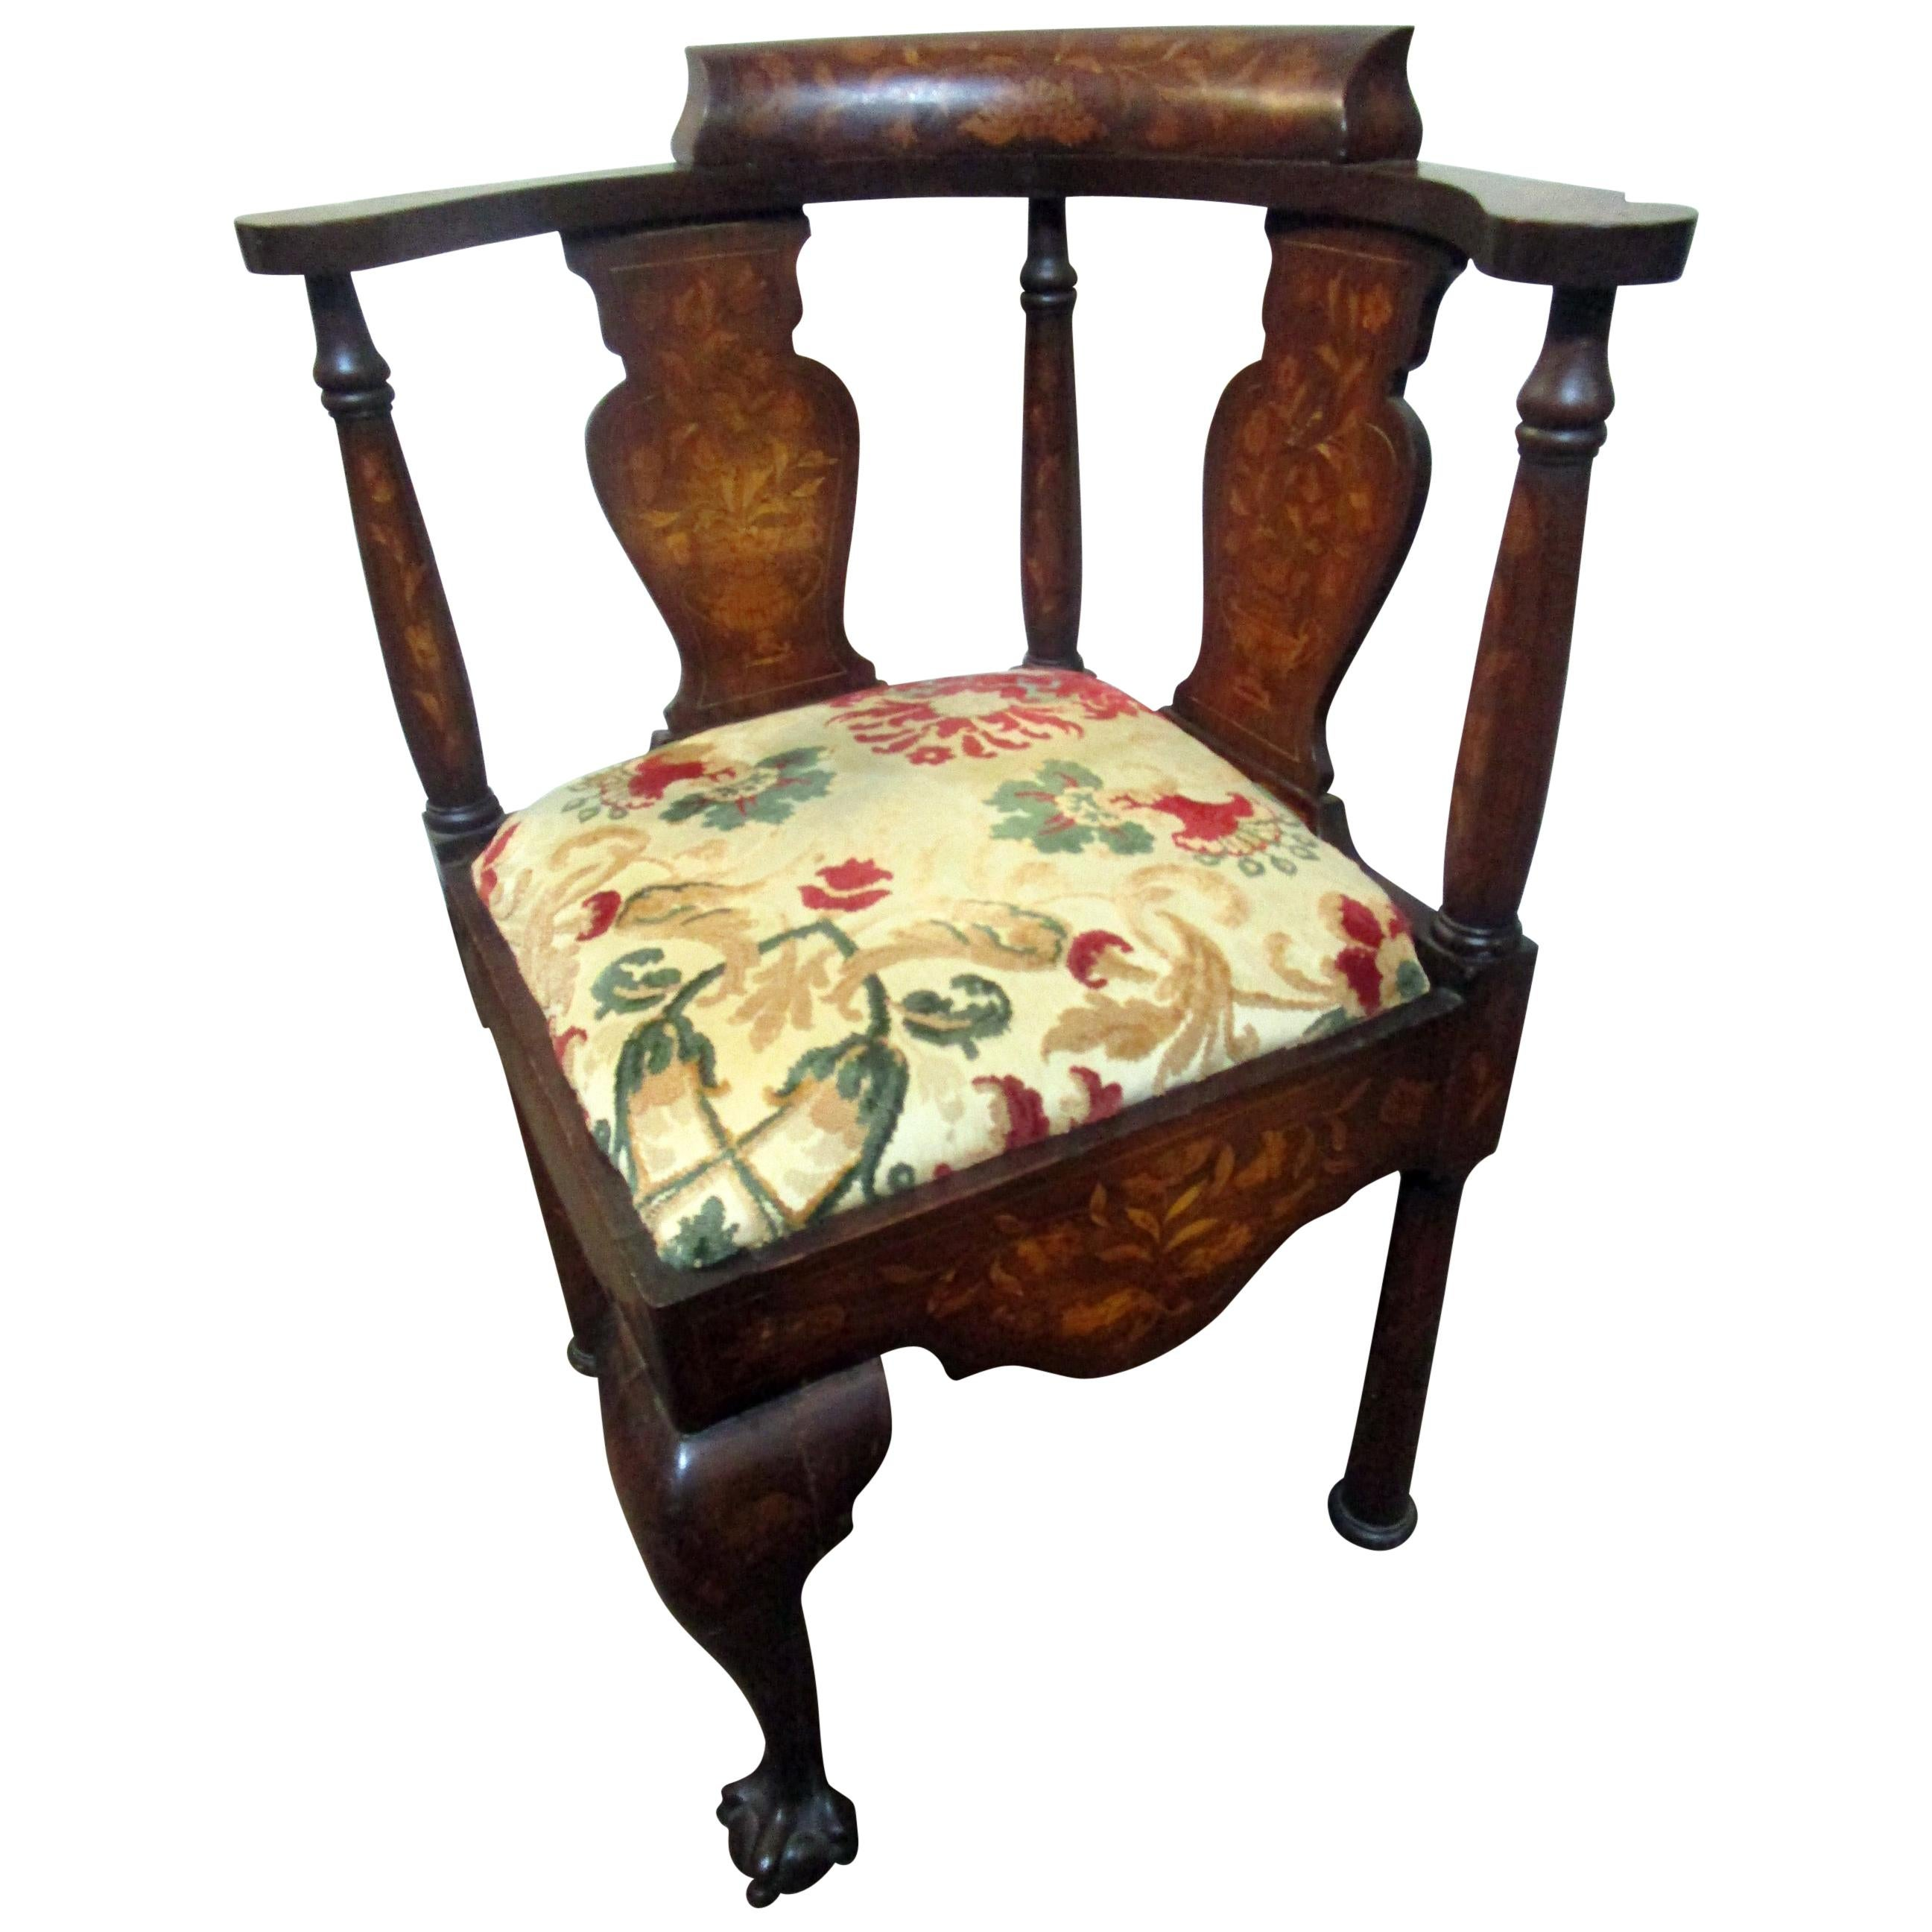 18th Century Chippendale Corner Chair with Marquetry Inlay